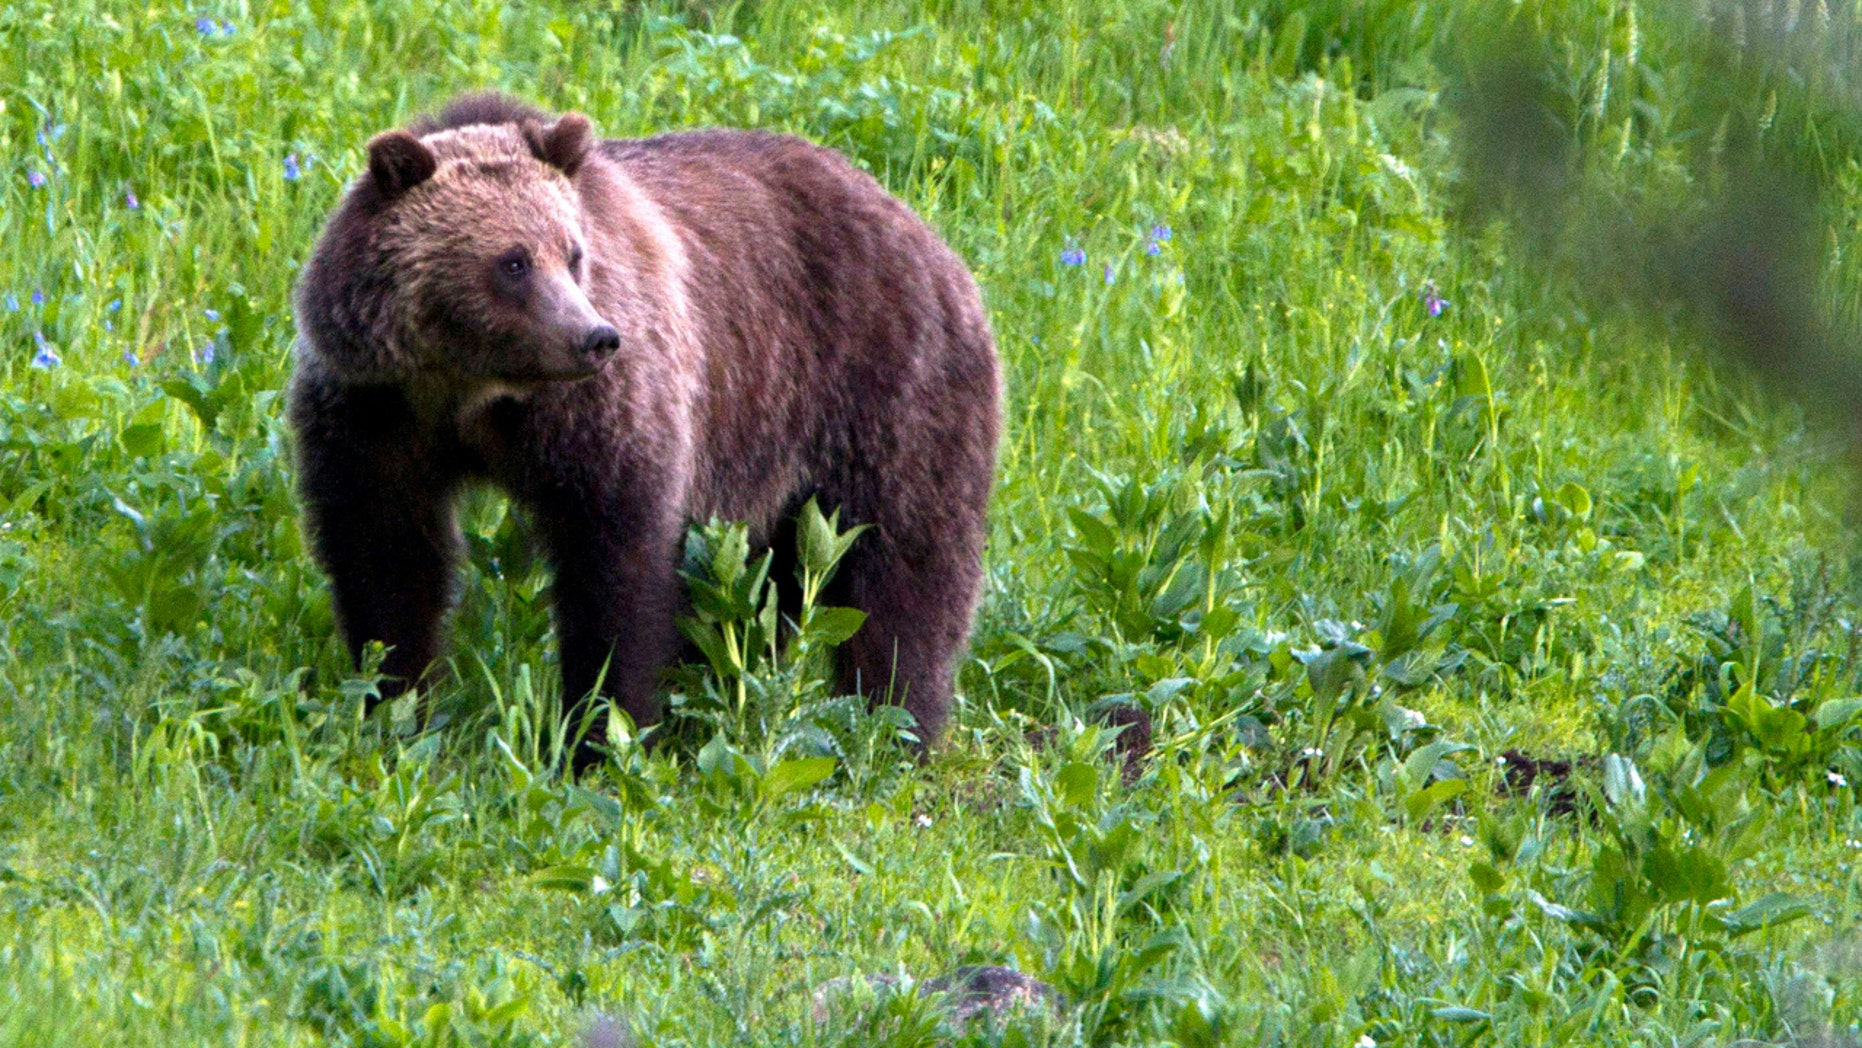 A grizzly bear roams near Beaver Lake in Yellowstone National Park, Wyo., July 6, 2011. On Monday, Sept. 24, 2018, a federal judge restored federal protections to grizzly bears in the Northern Rocky Mountains and blocked the first hunts planned for the animals in the Lower 48 states in almost three decades.